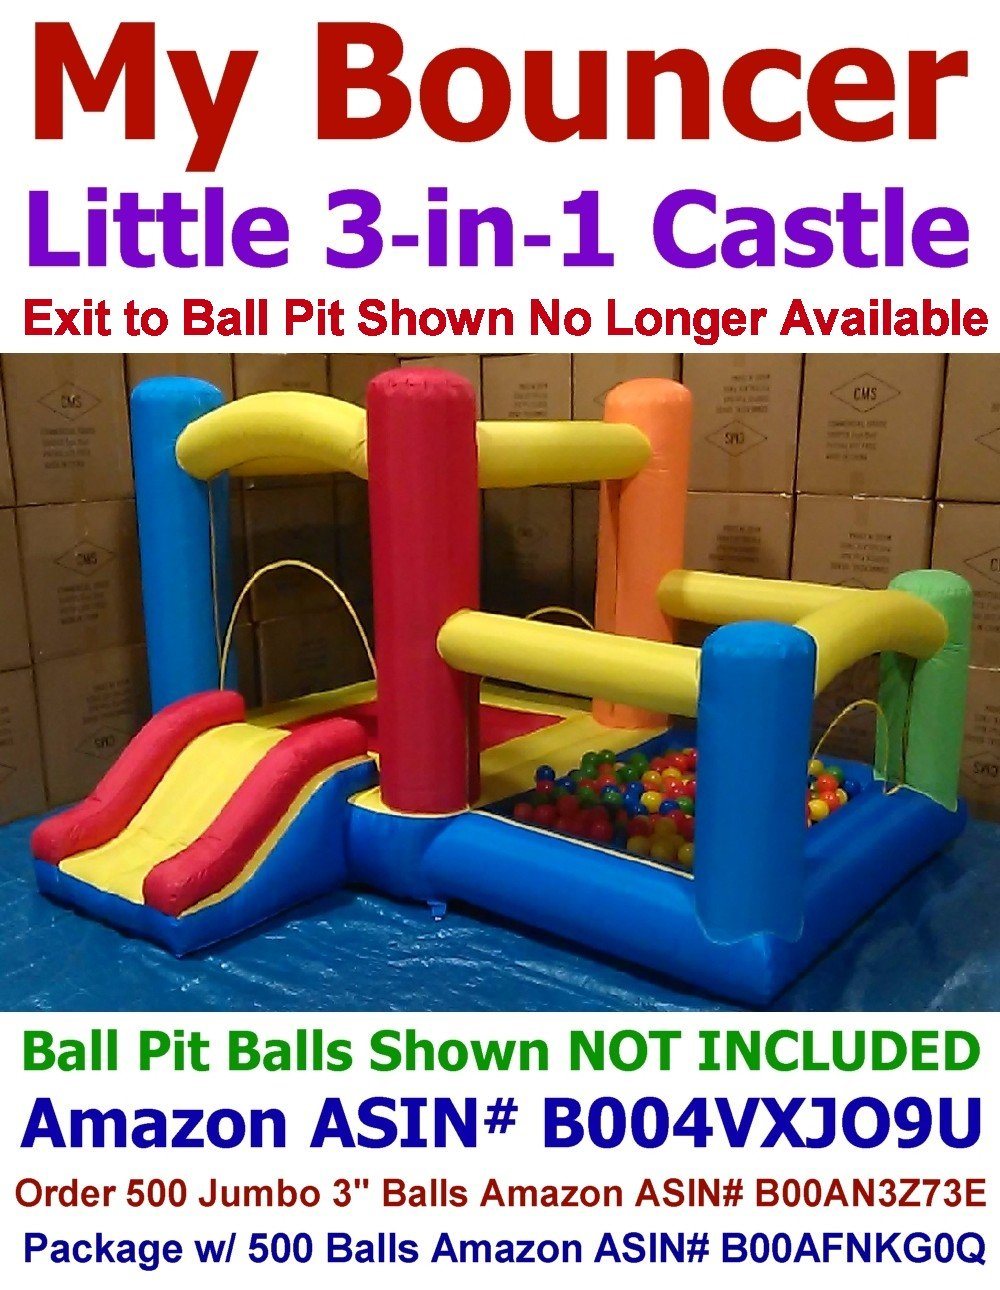 My Bouncer 3-in-1 Little Castle Bounce 118'' L X 102'' D X 72'' H with Attached Ball Pit and Slide by My Bouncer (Image #1)